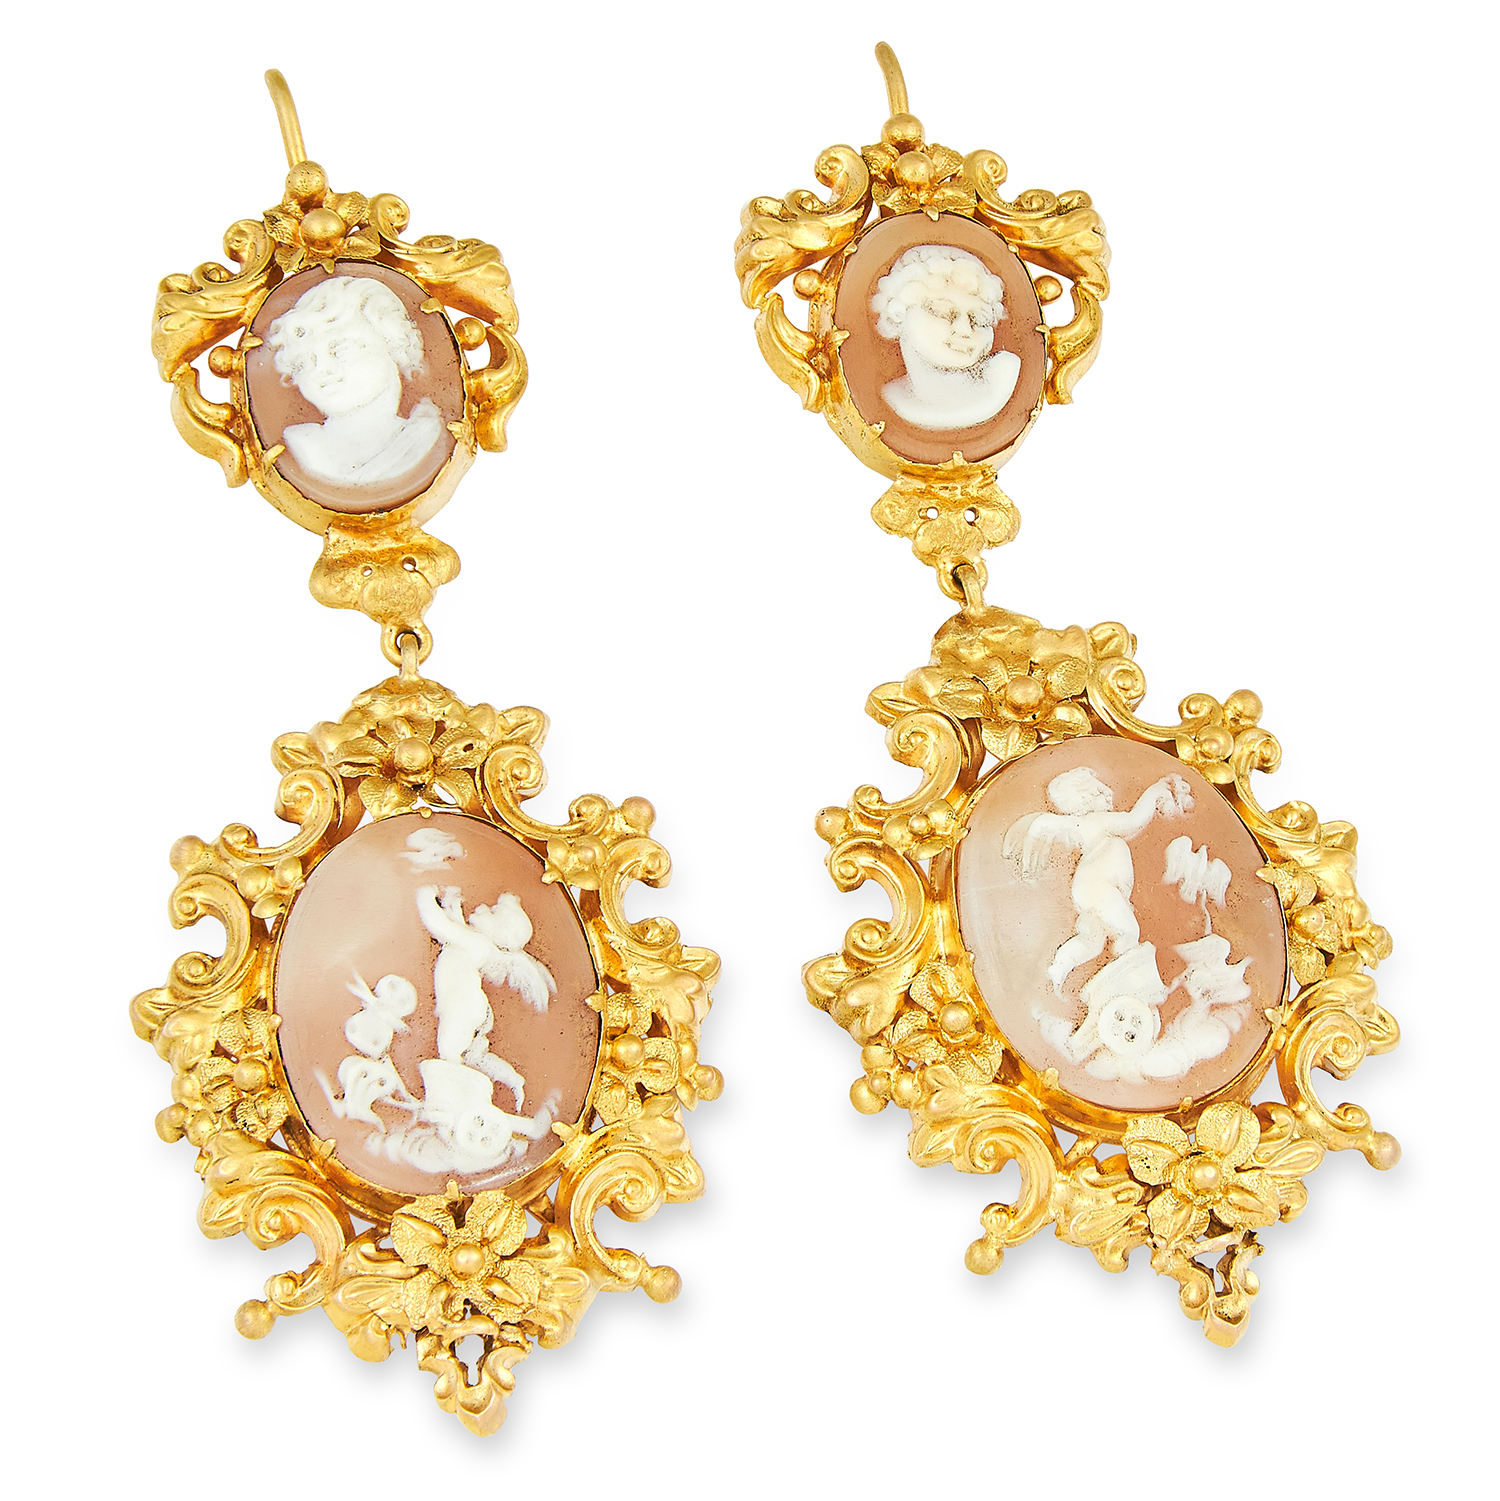 ANTIQUE VICTORIAN CAMEO EARRINGS in high carat yellow gold, each comprising of two carved cameos